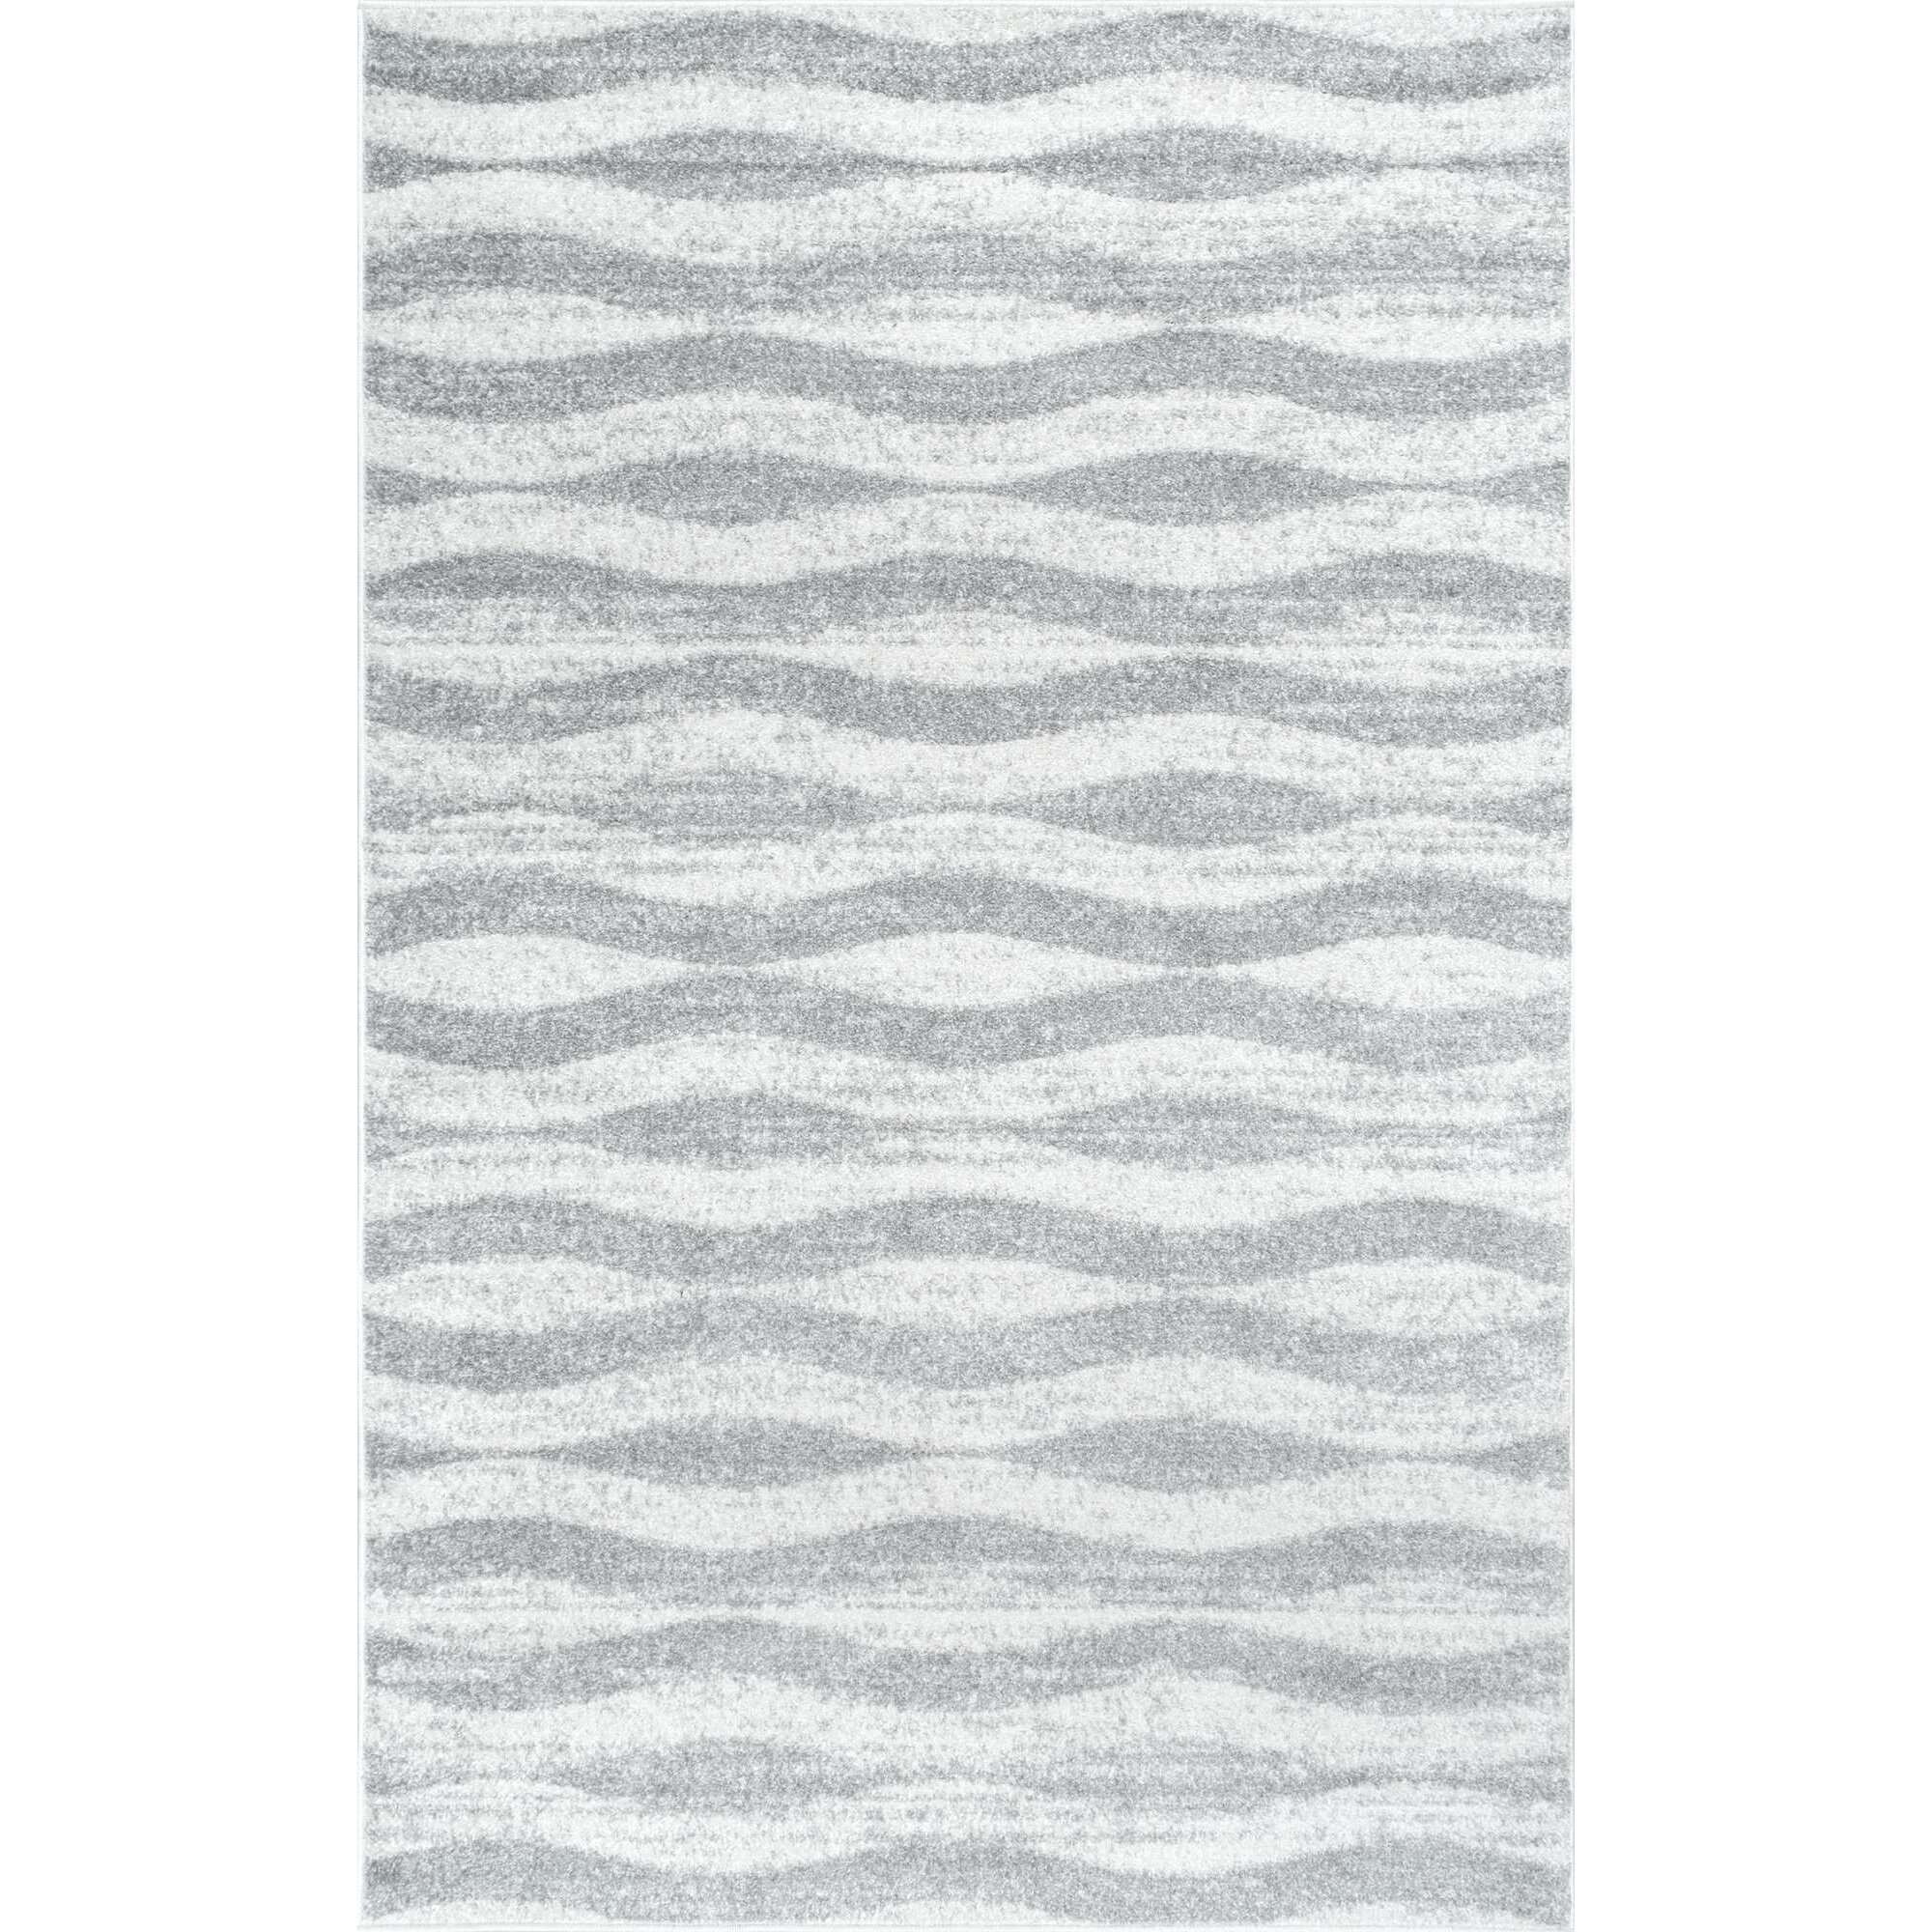 Mercury Row Lada Abstract Waves Gray White Area Rug